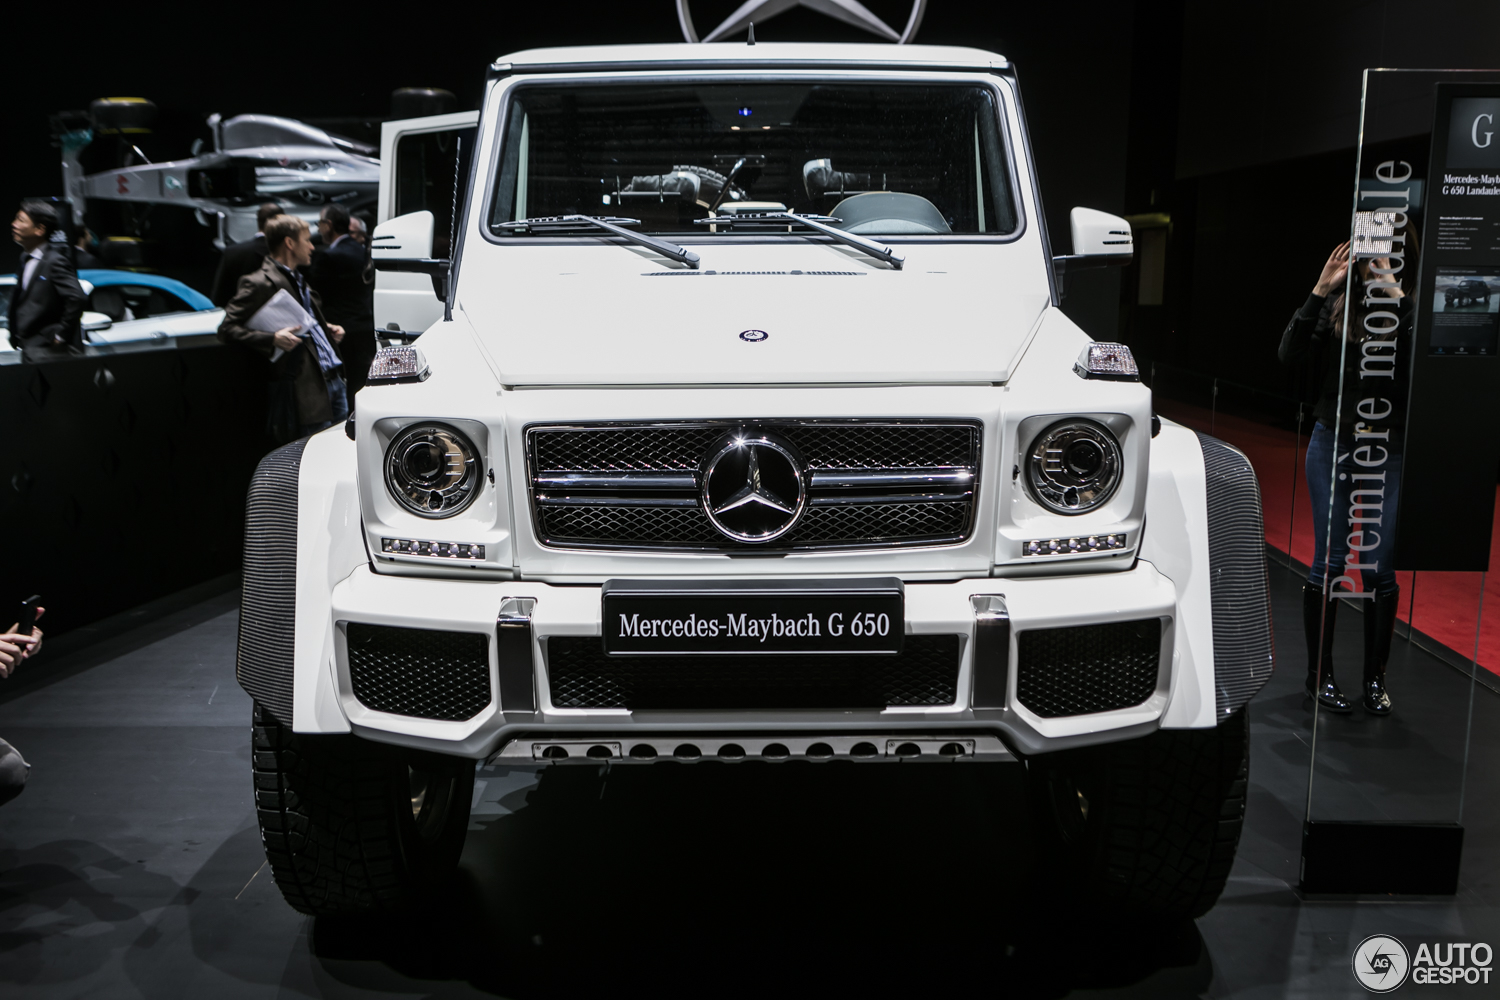 Mercedes Maybach G650 Price >> Geneva 2017: Mercedes-Maybach G650 4×4 Landaulet